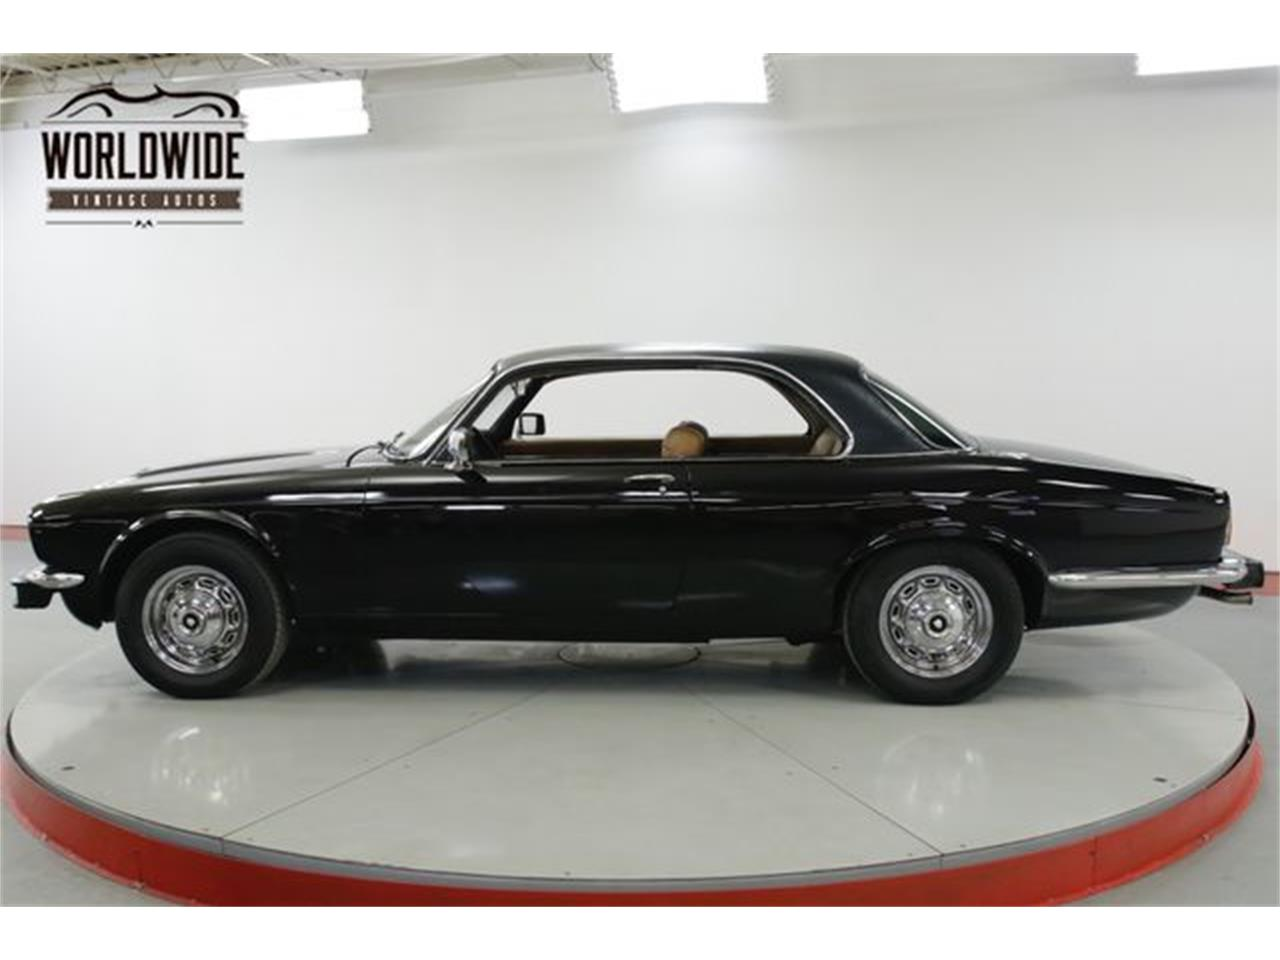 Large Picture of '76 Jaguar XJ6 located in Colorado - $28,900.00 - PSG5